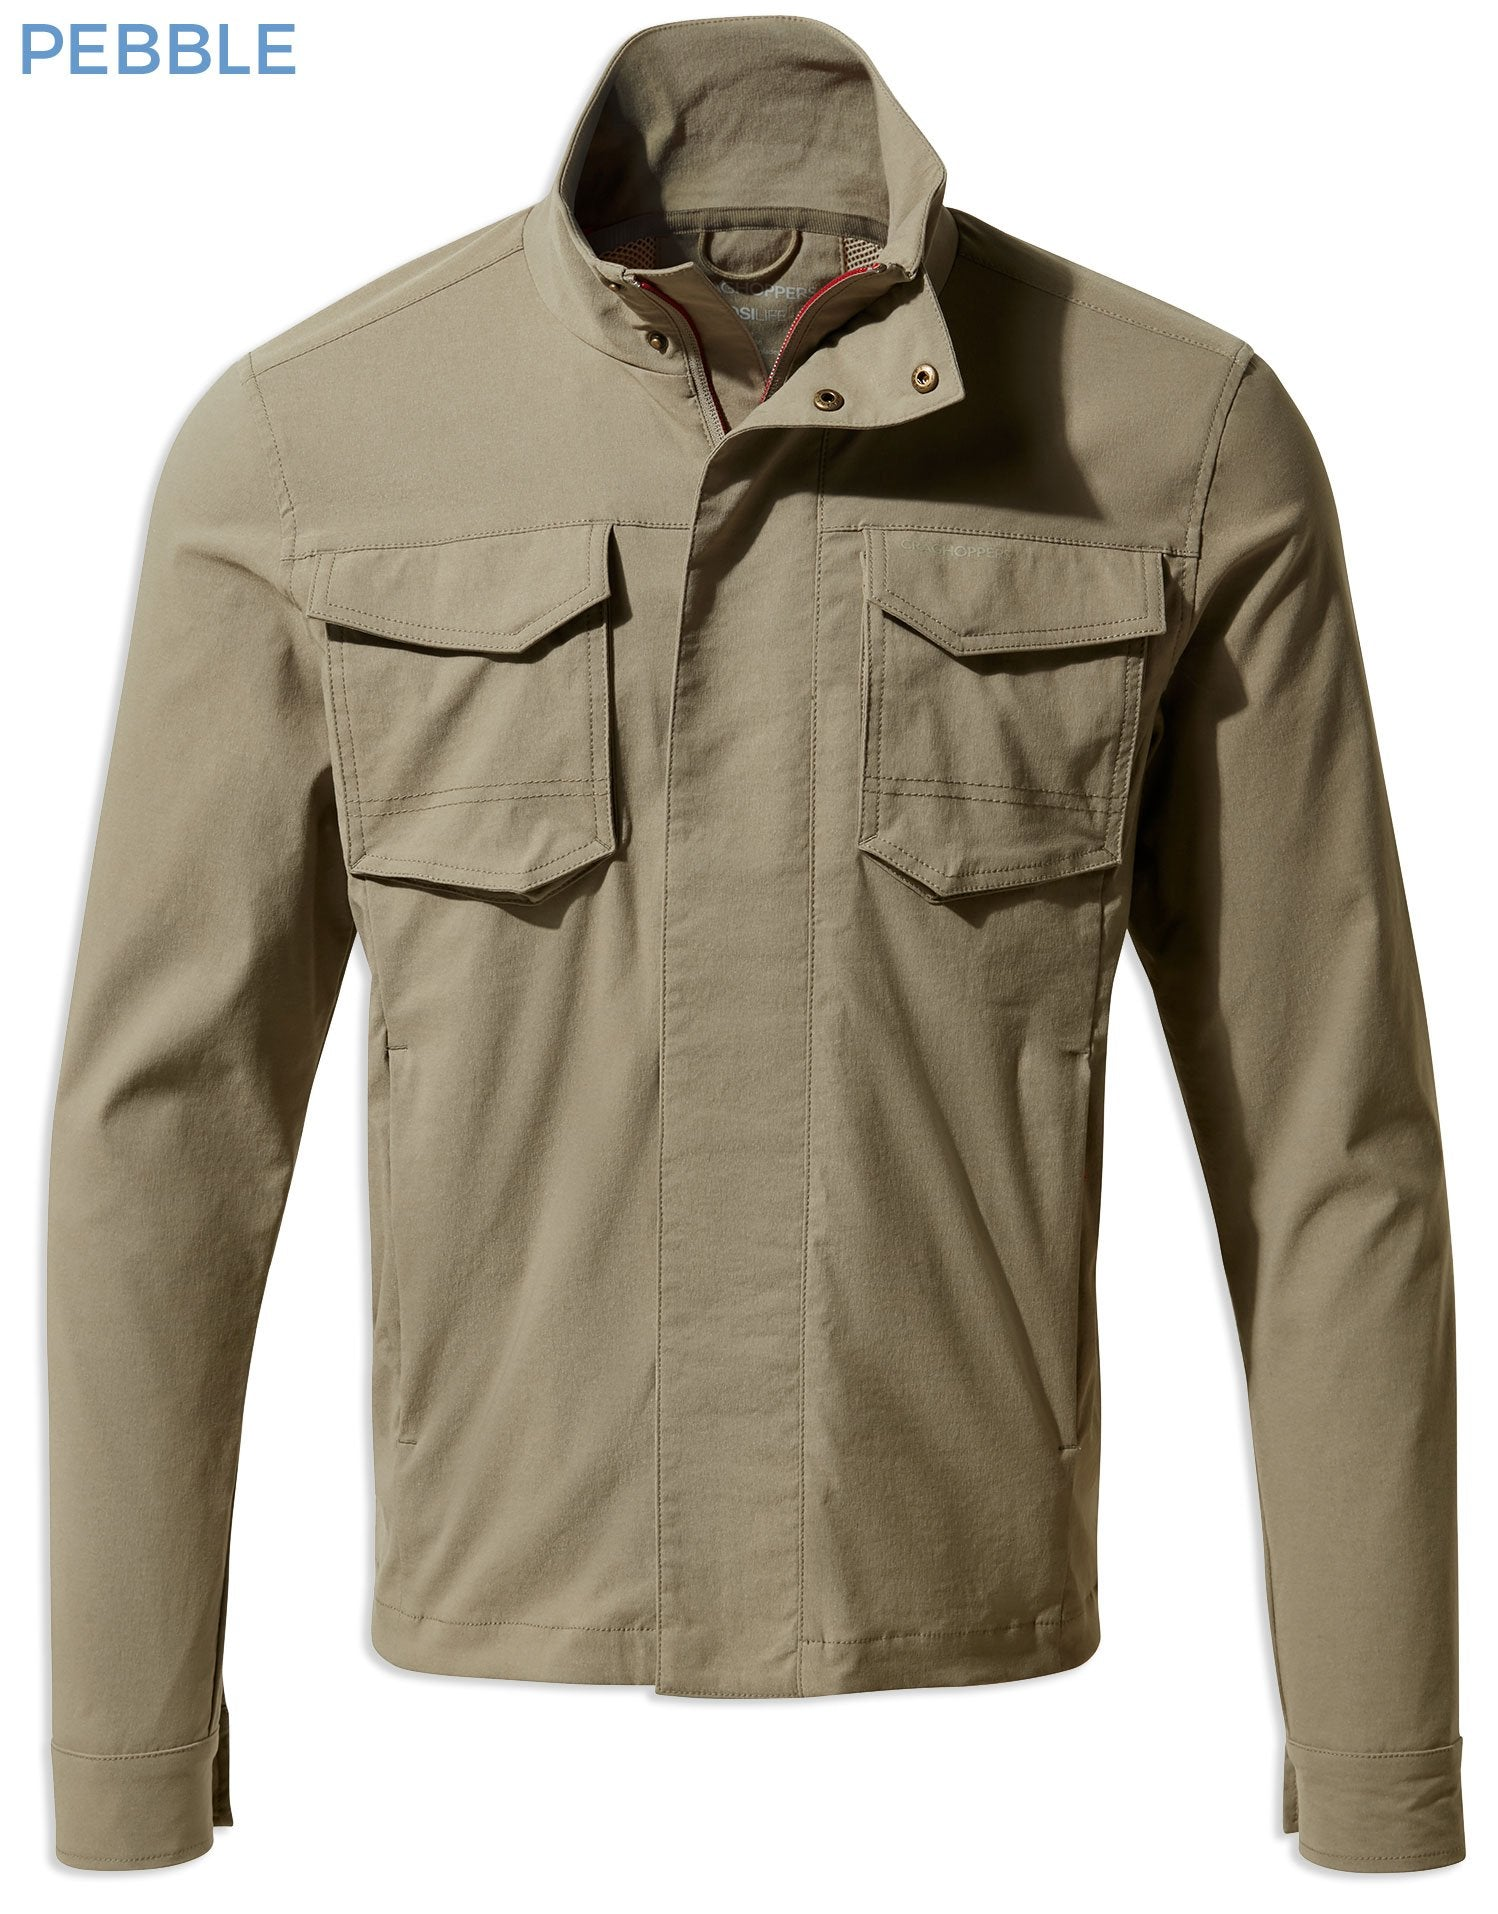 Craghoppers NosiLife Edmund Jacket | Pebble